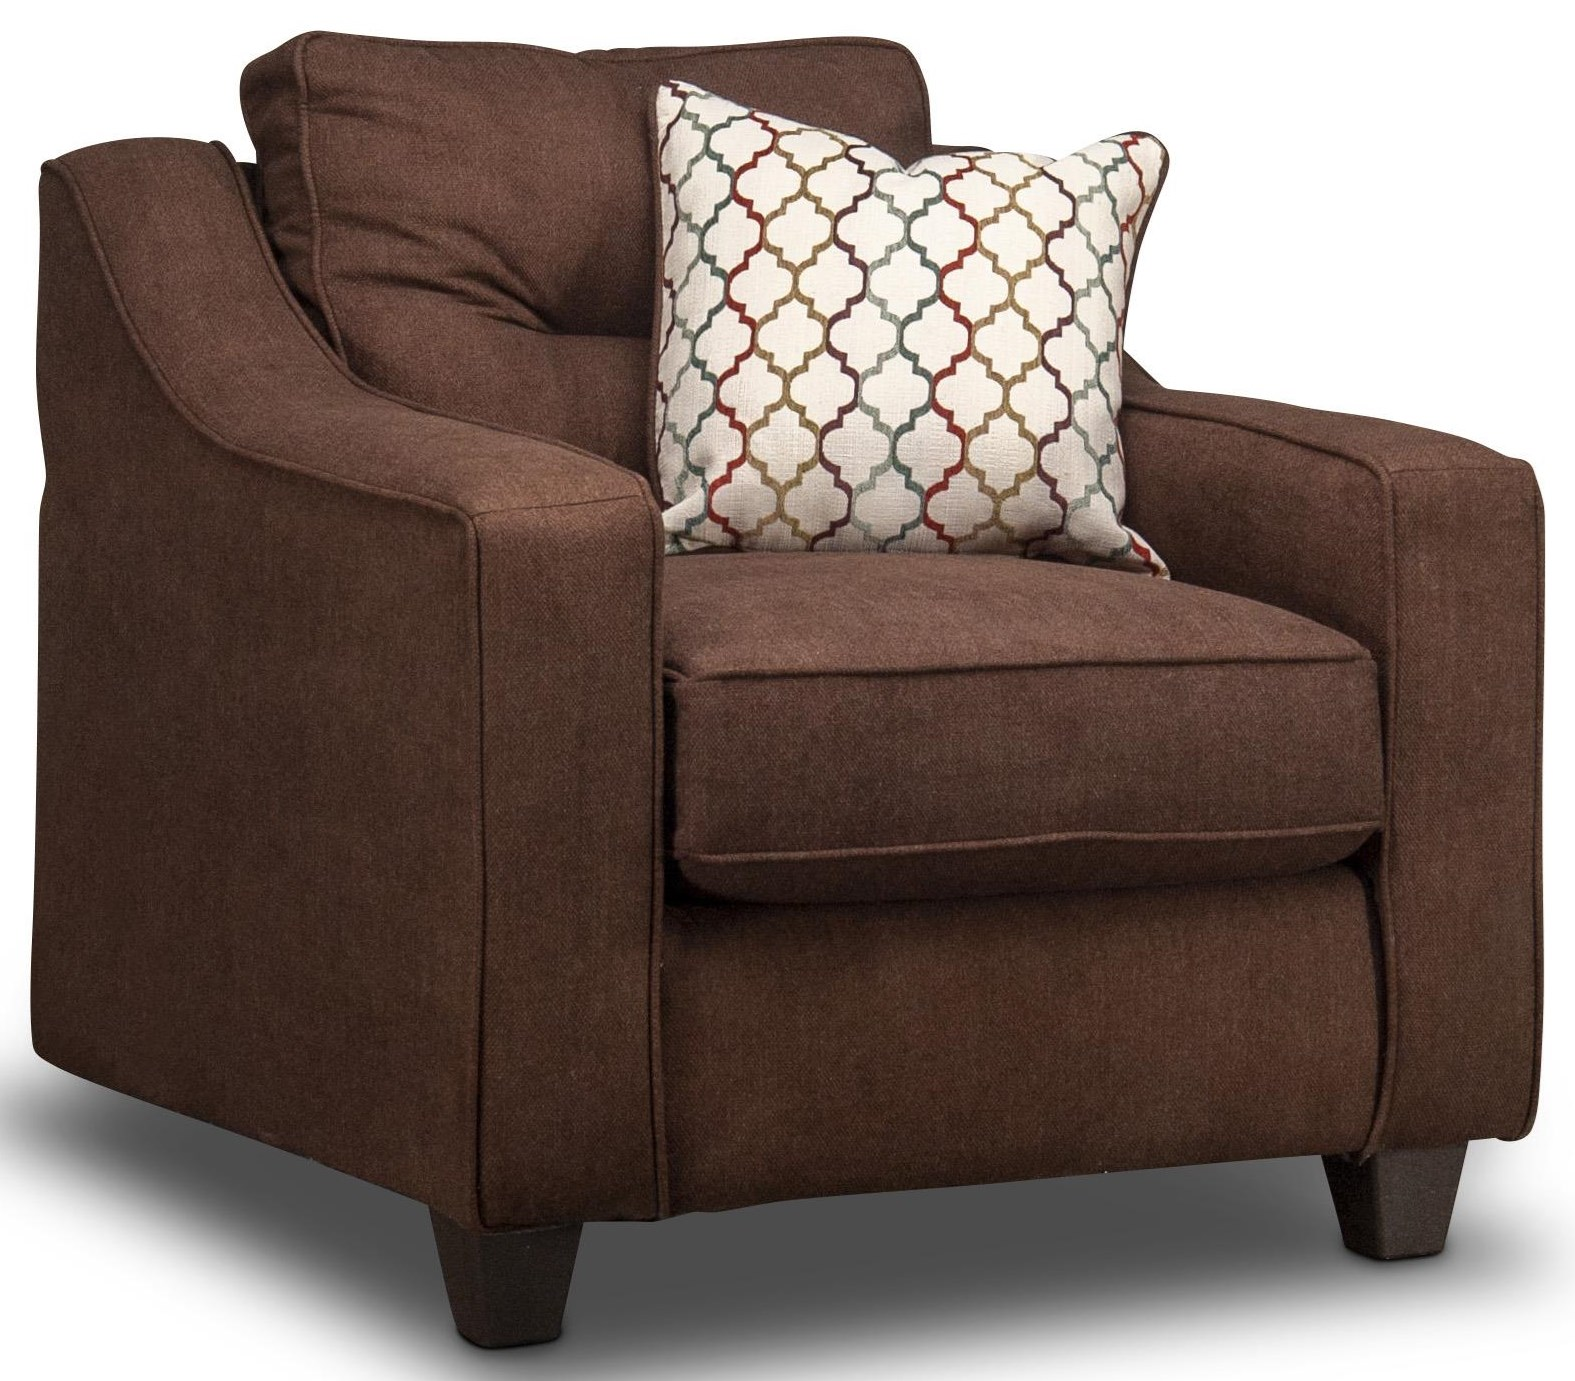 Crispin Crispin Chair by Peak Living at Morris Home